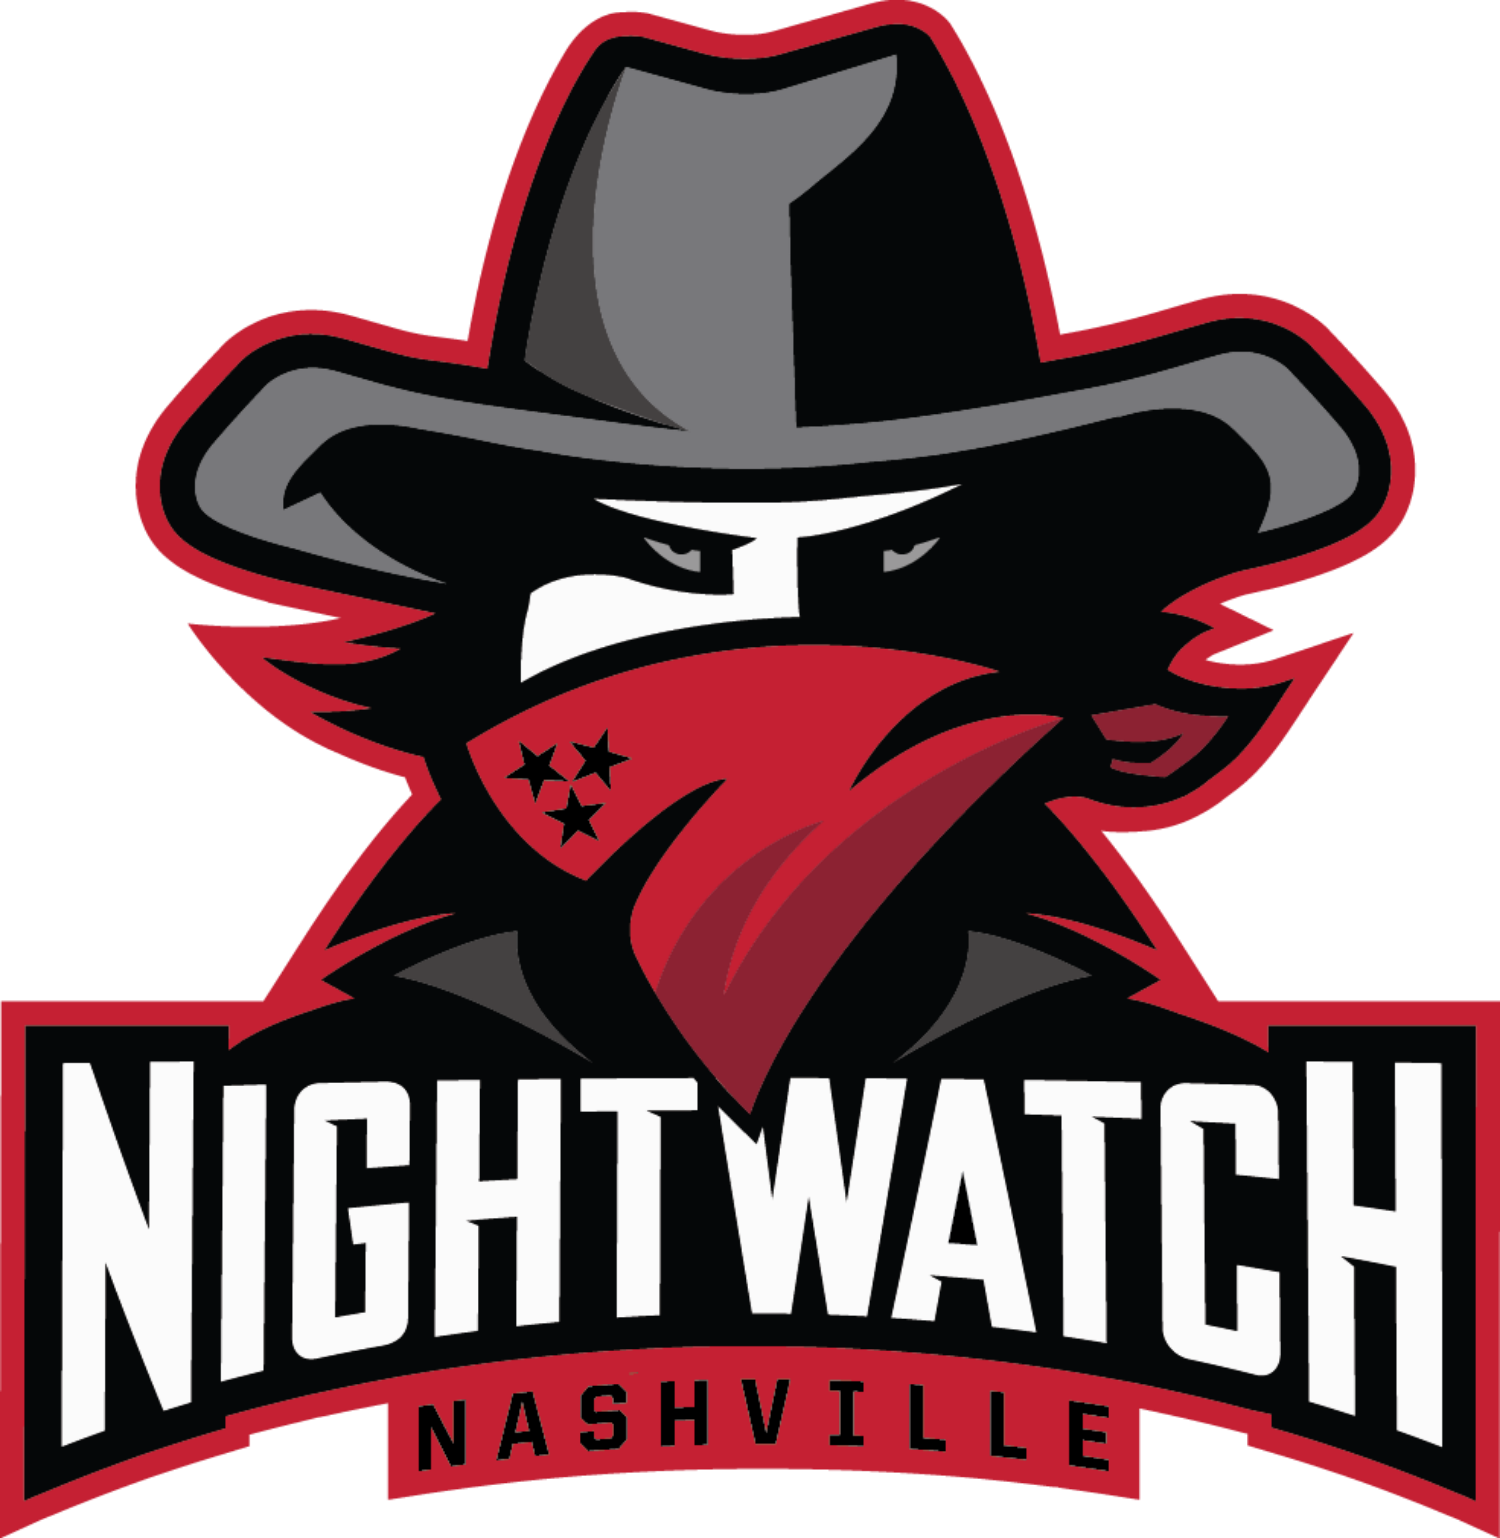 Nashville NightWatch